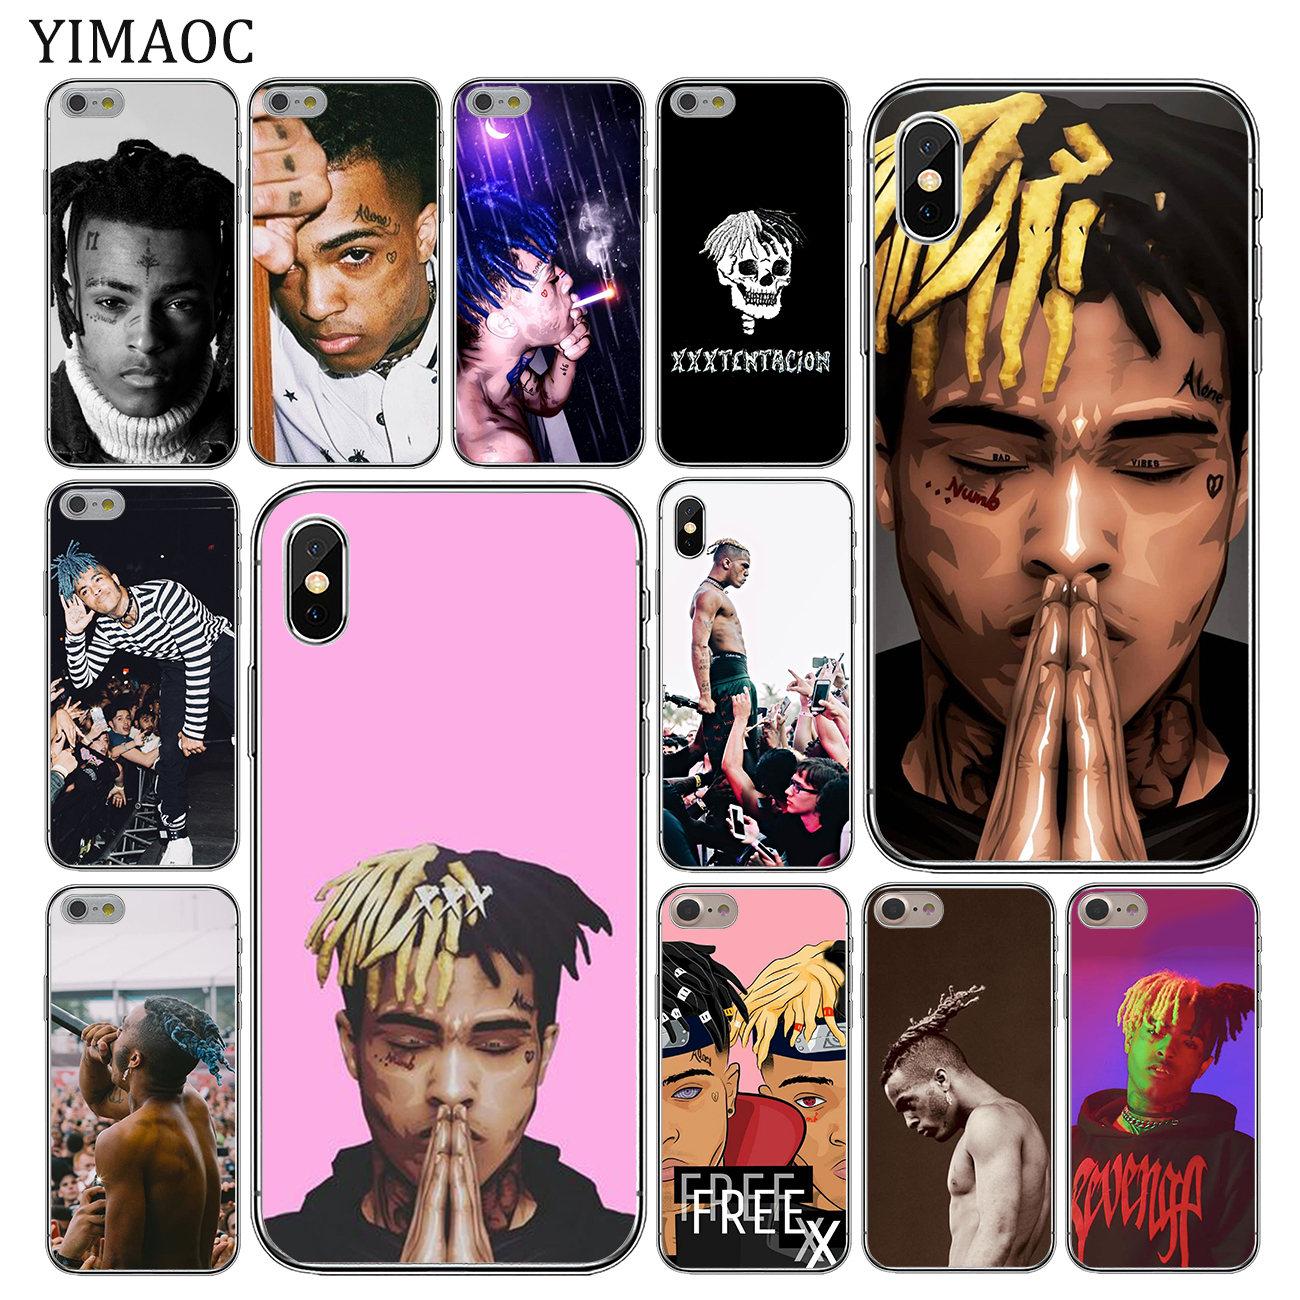 YIMAOC Rap Singer <font><b>XXXTentacion</b></font> MC Soft Silicone Cover <font><b>Case</b></font> for Apple <font><b>iPhone</b></font> 11 Pro X XR XS Max 6 6S <font><b>7</b></font> 8 Plus 5 5S SE 10 image